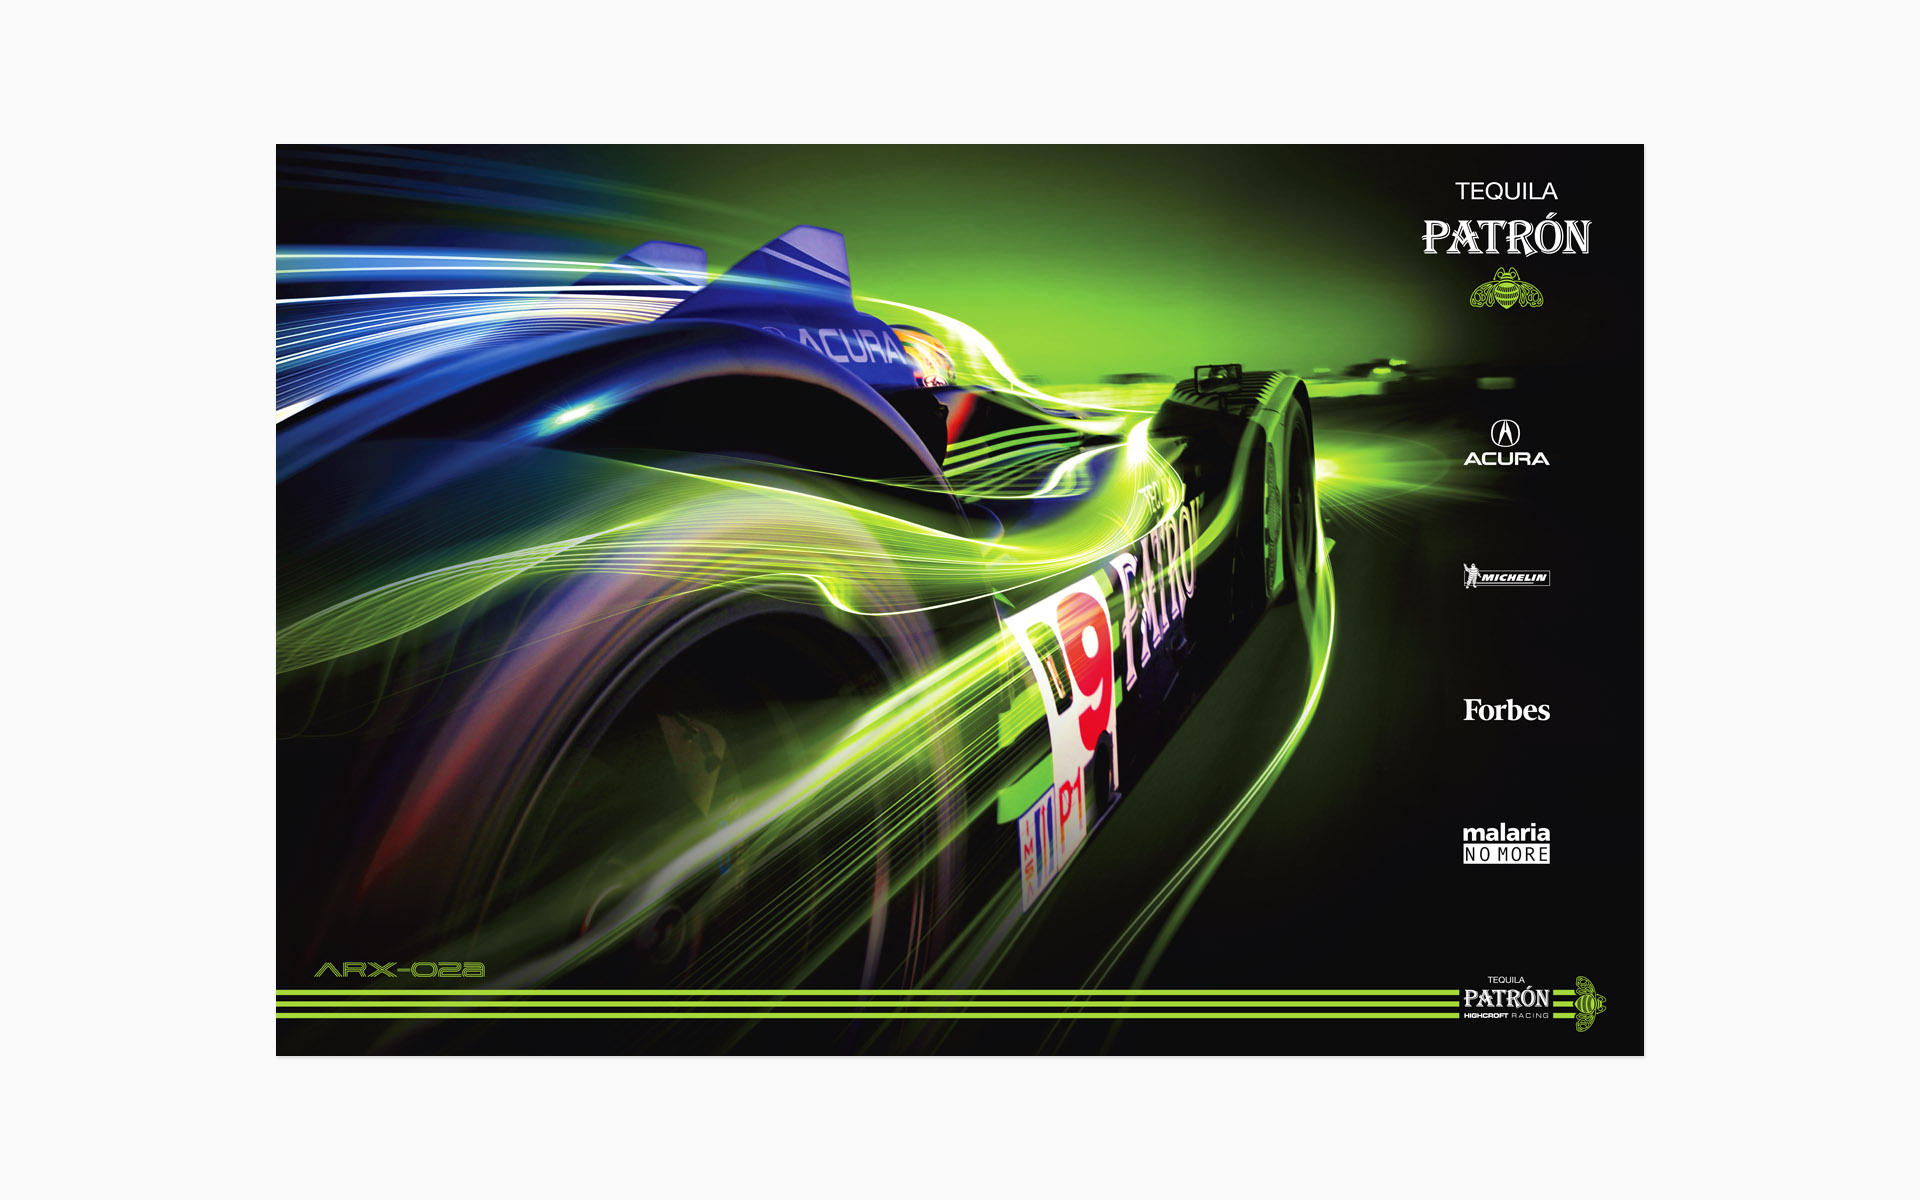 2009 Pátron Highcroft Racing Poster